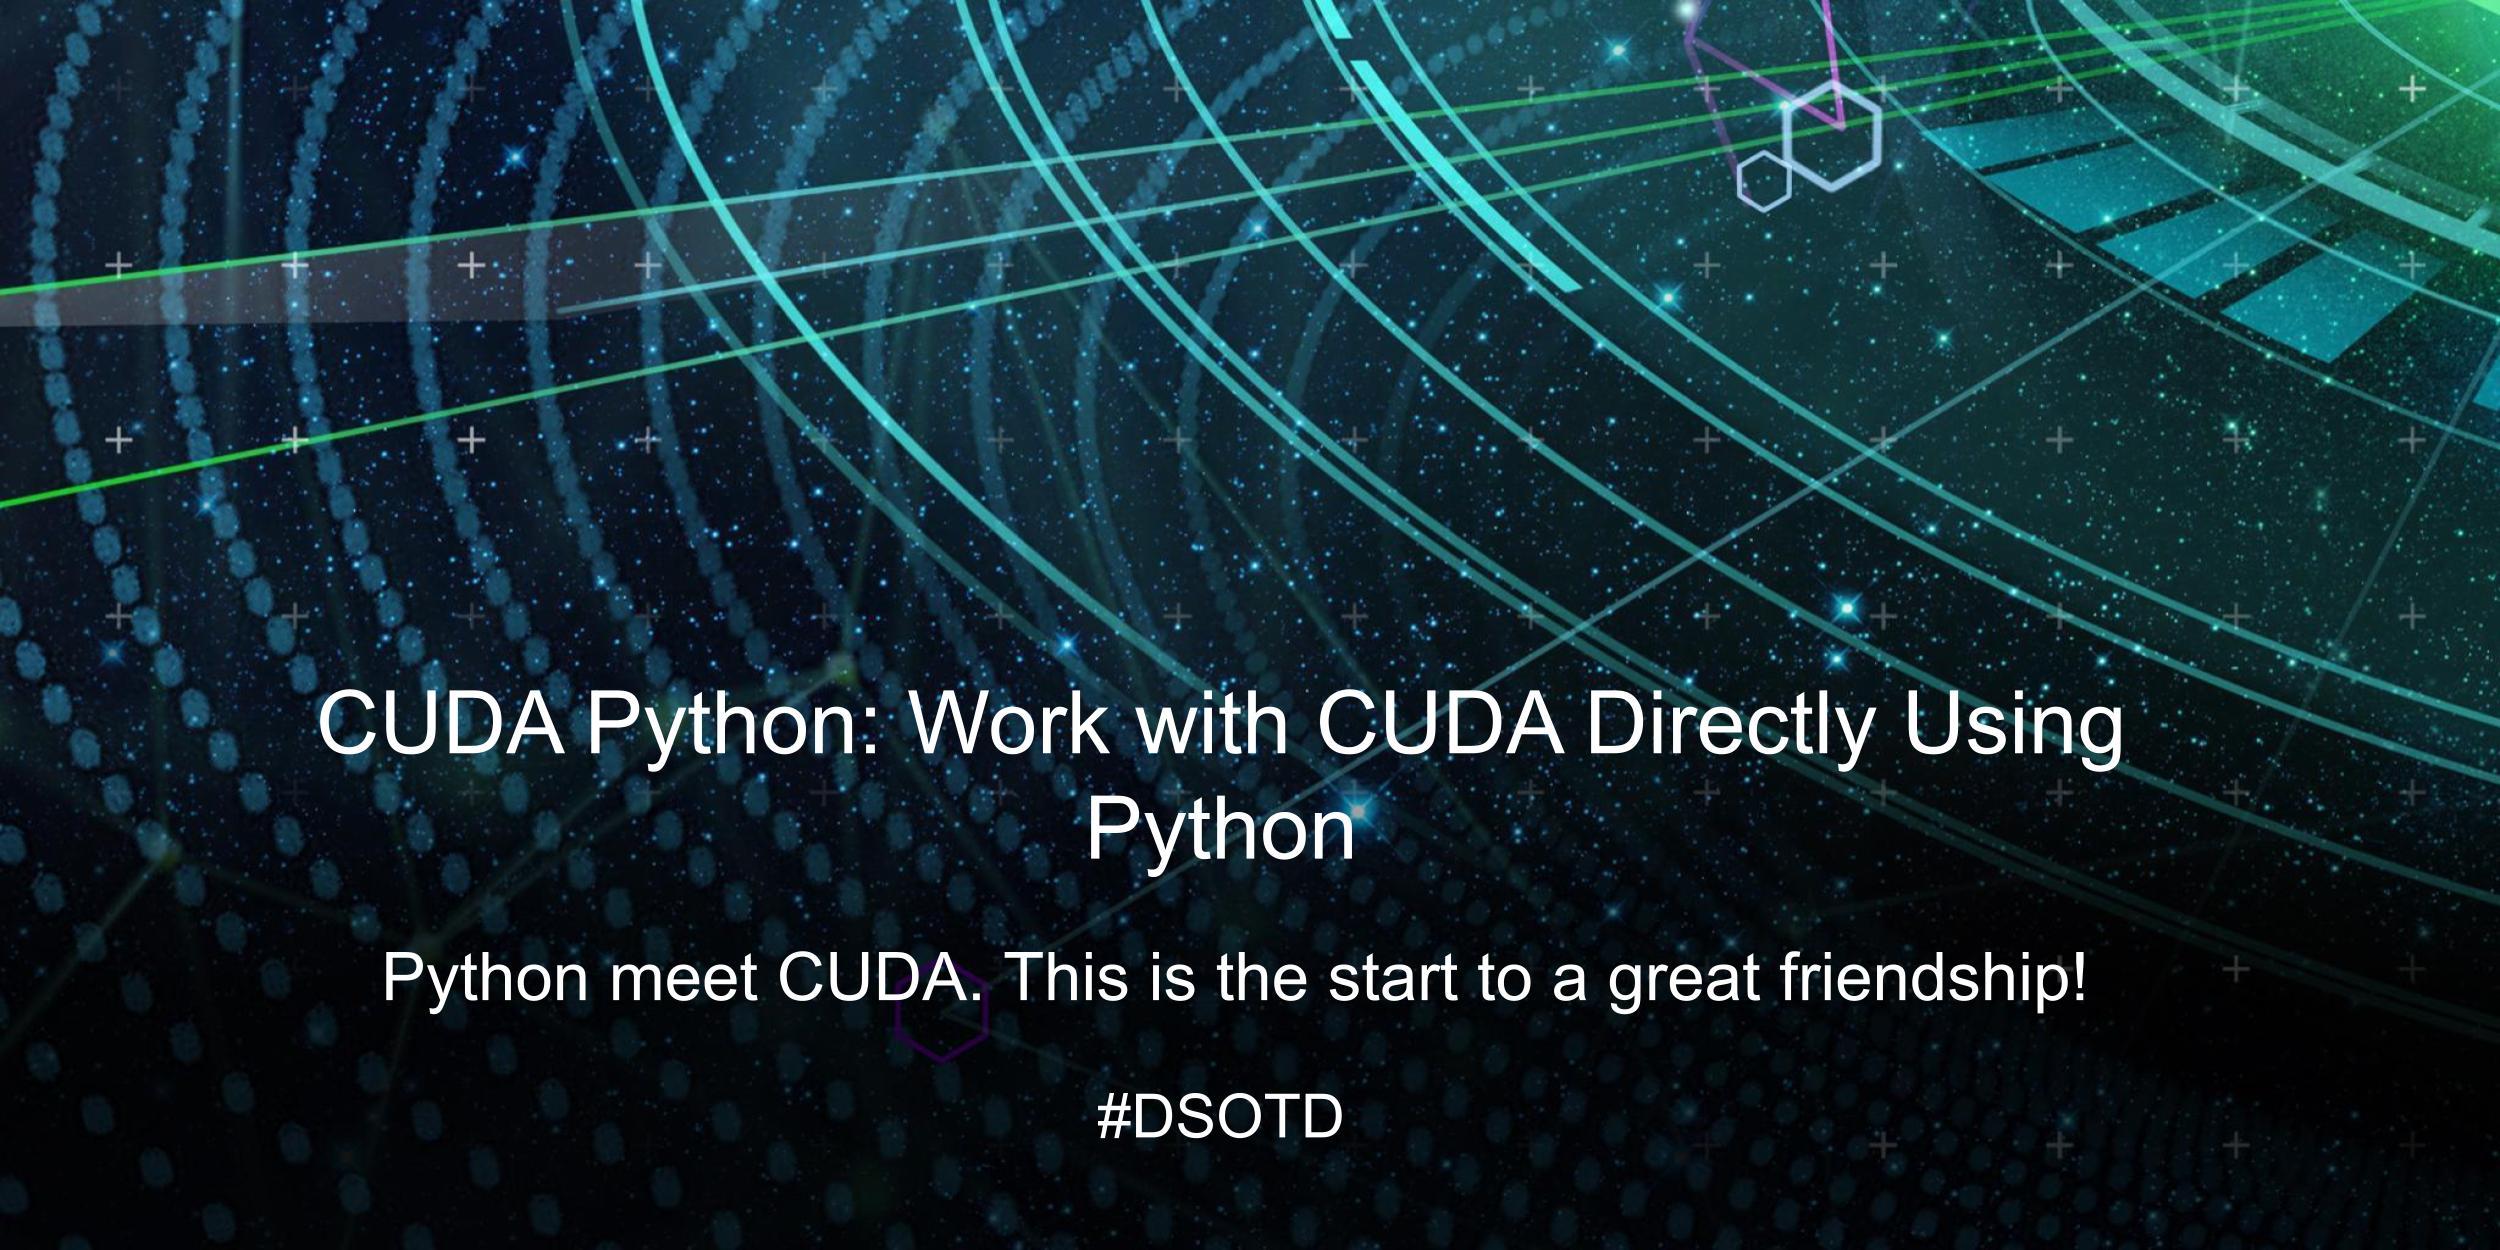 Python meet CUDA. This is the start to a great friendship!